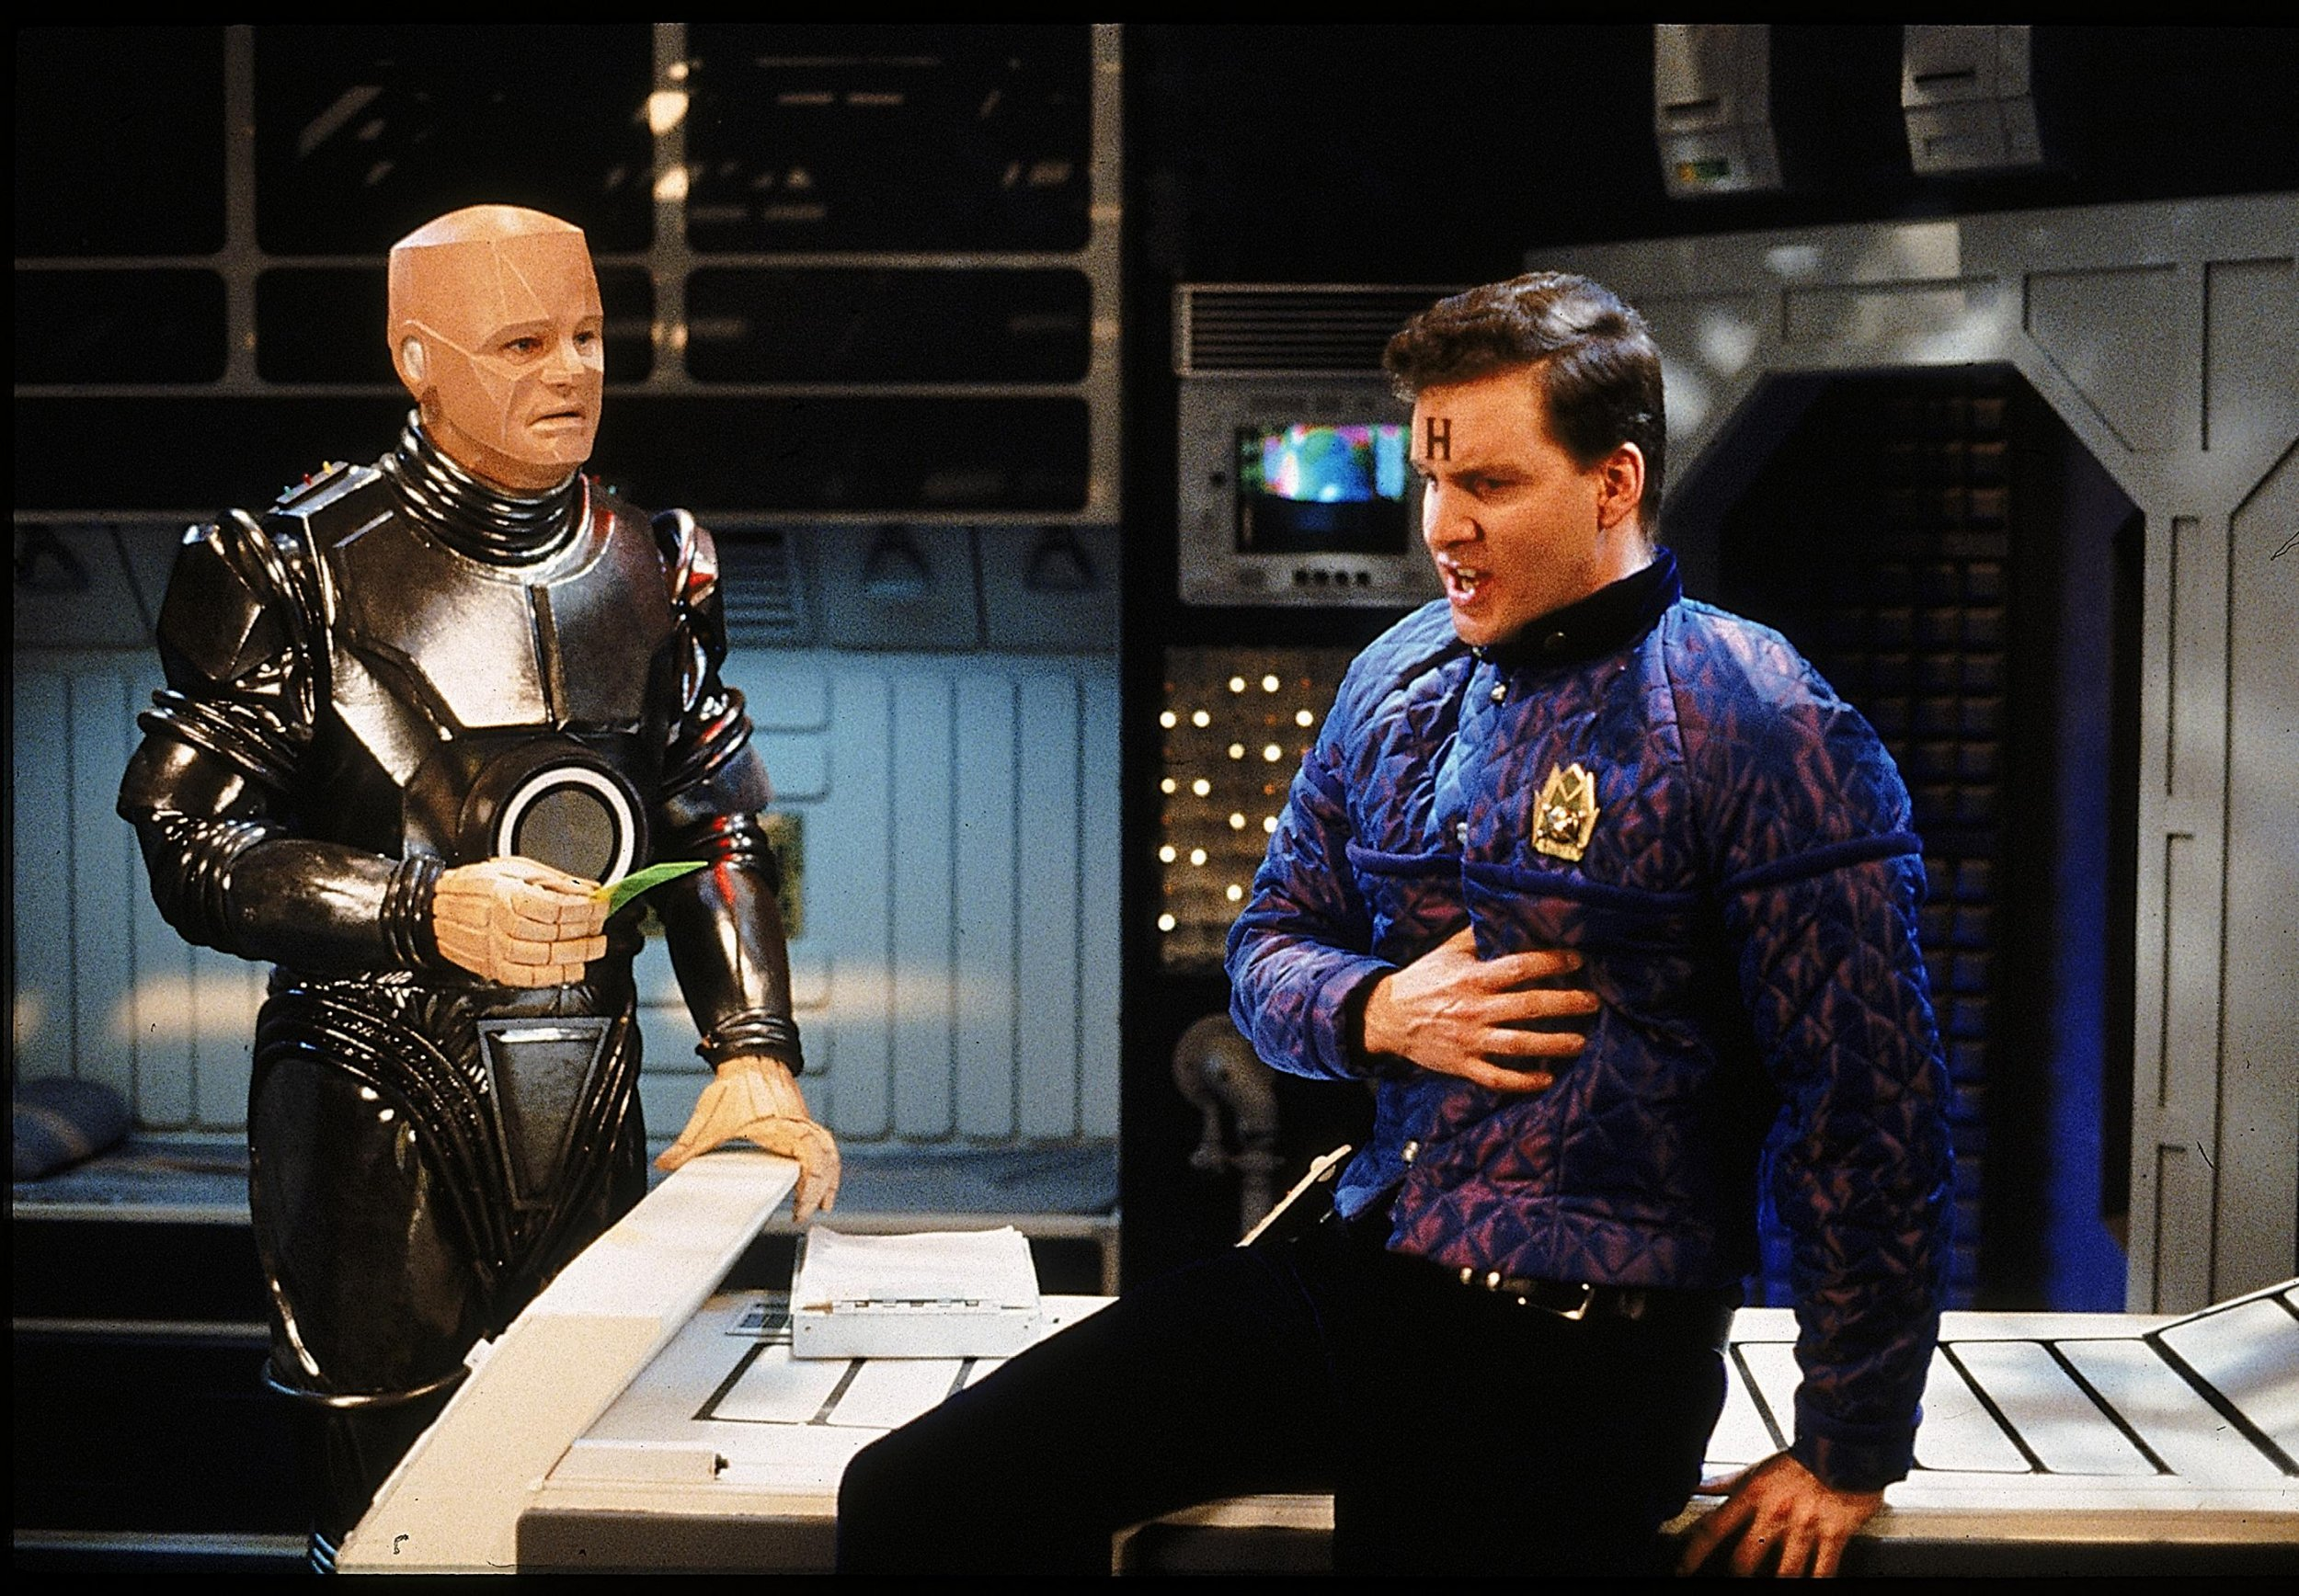 7 secrets from behind the scenes of Red Dwarf, as told by the cast